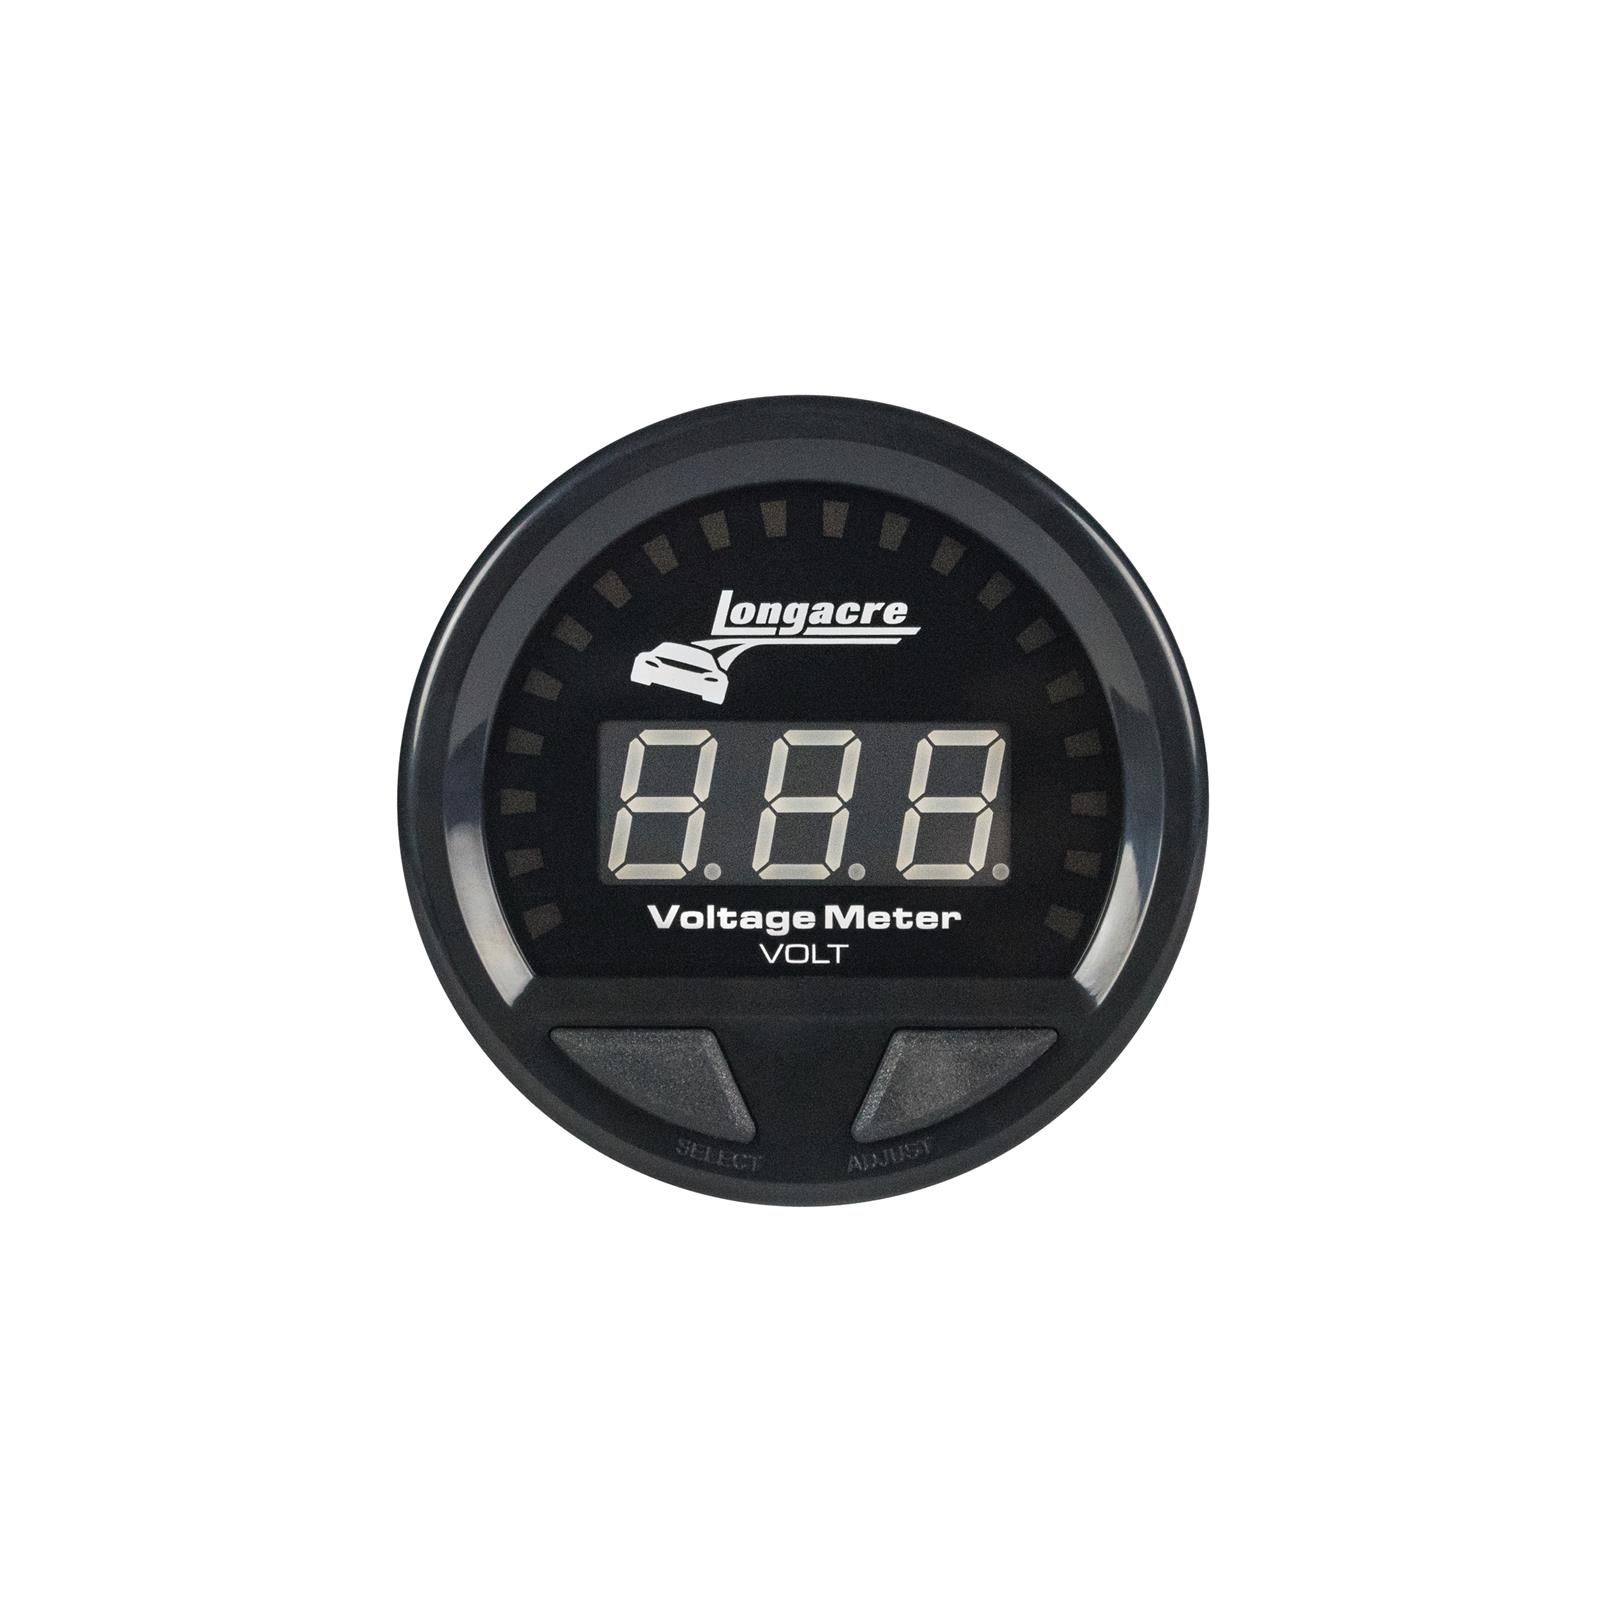 Digital Elite Waterproof Gauges, Volt Gauge 8-18, Sensor Included